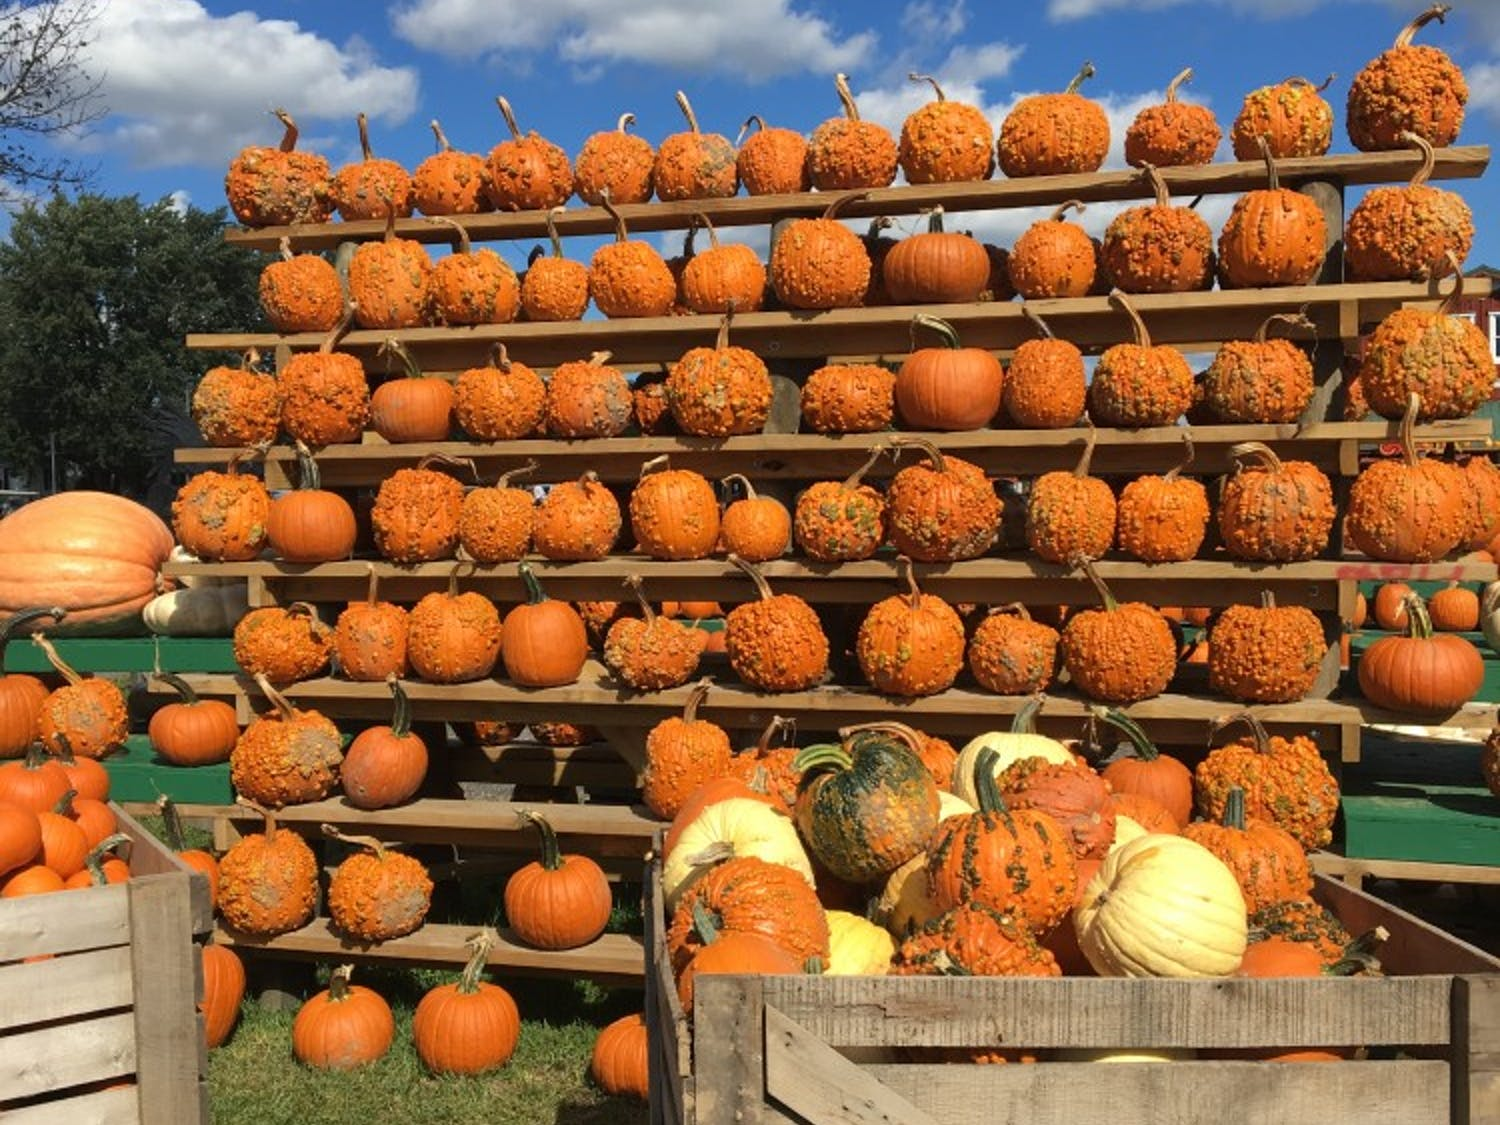 The Great Pumpkin Farm in Clarence is a classic addition to the fall-season roster. The farm has hundreds of pre-picked gourds for patrons to choose.